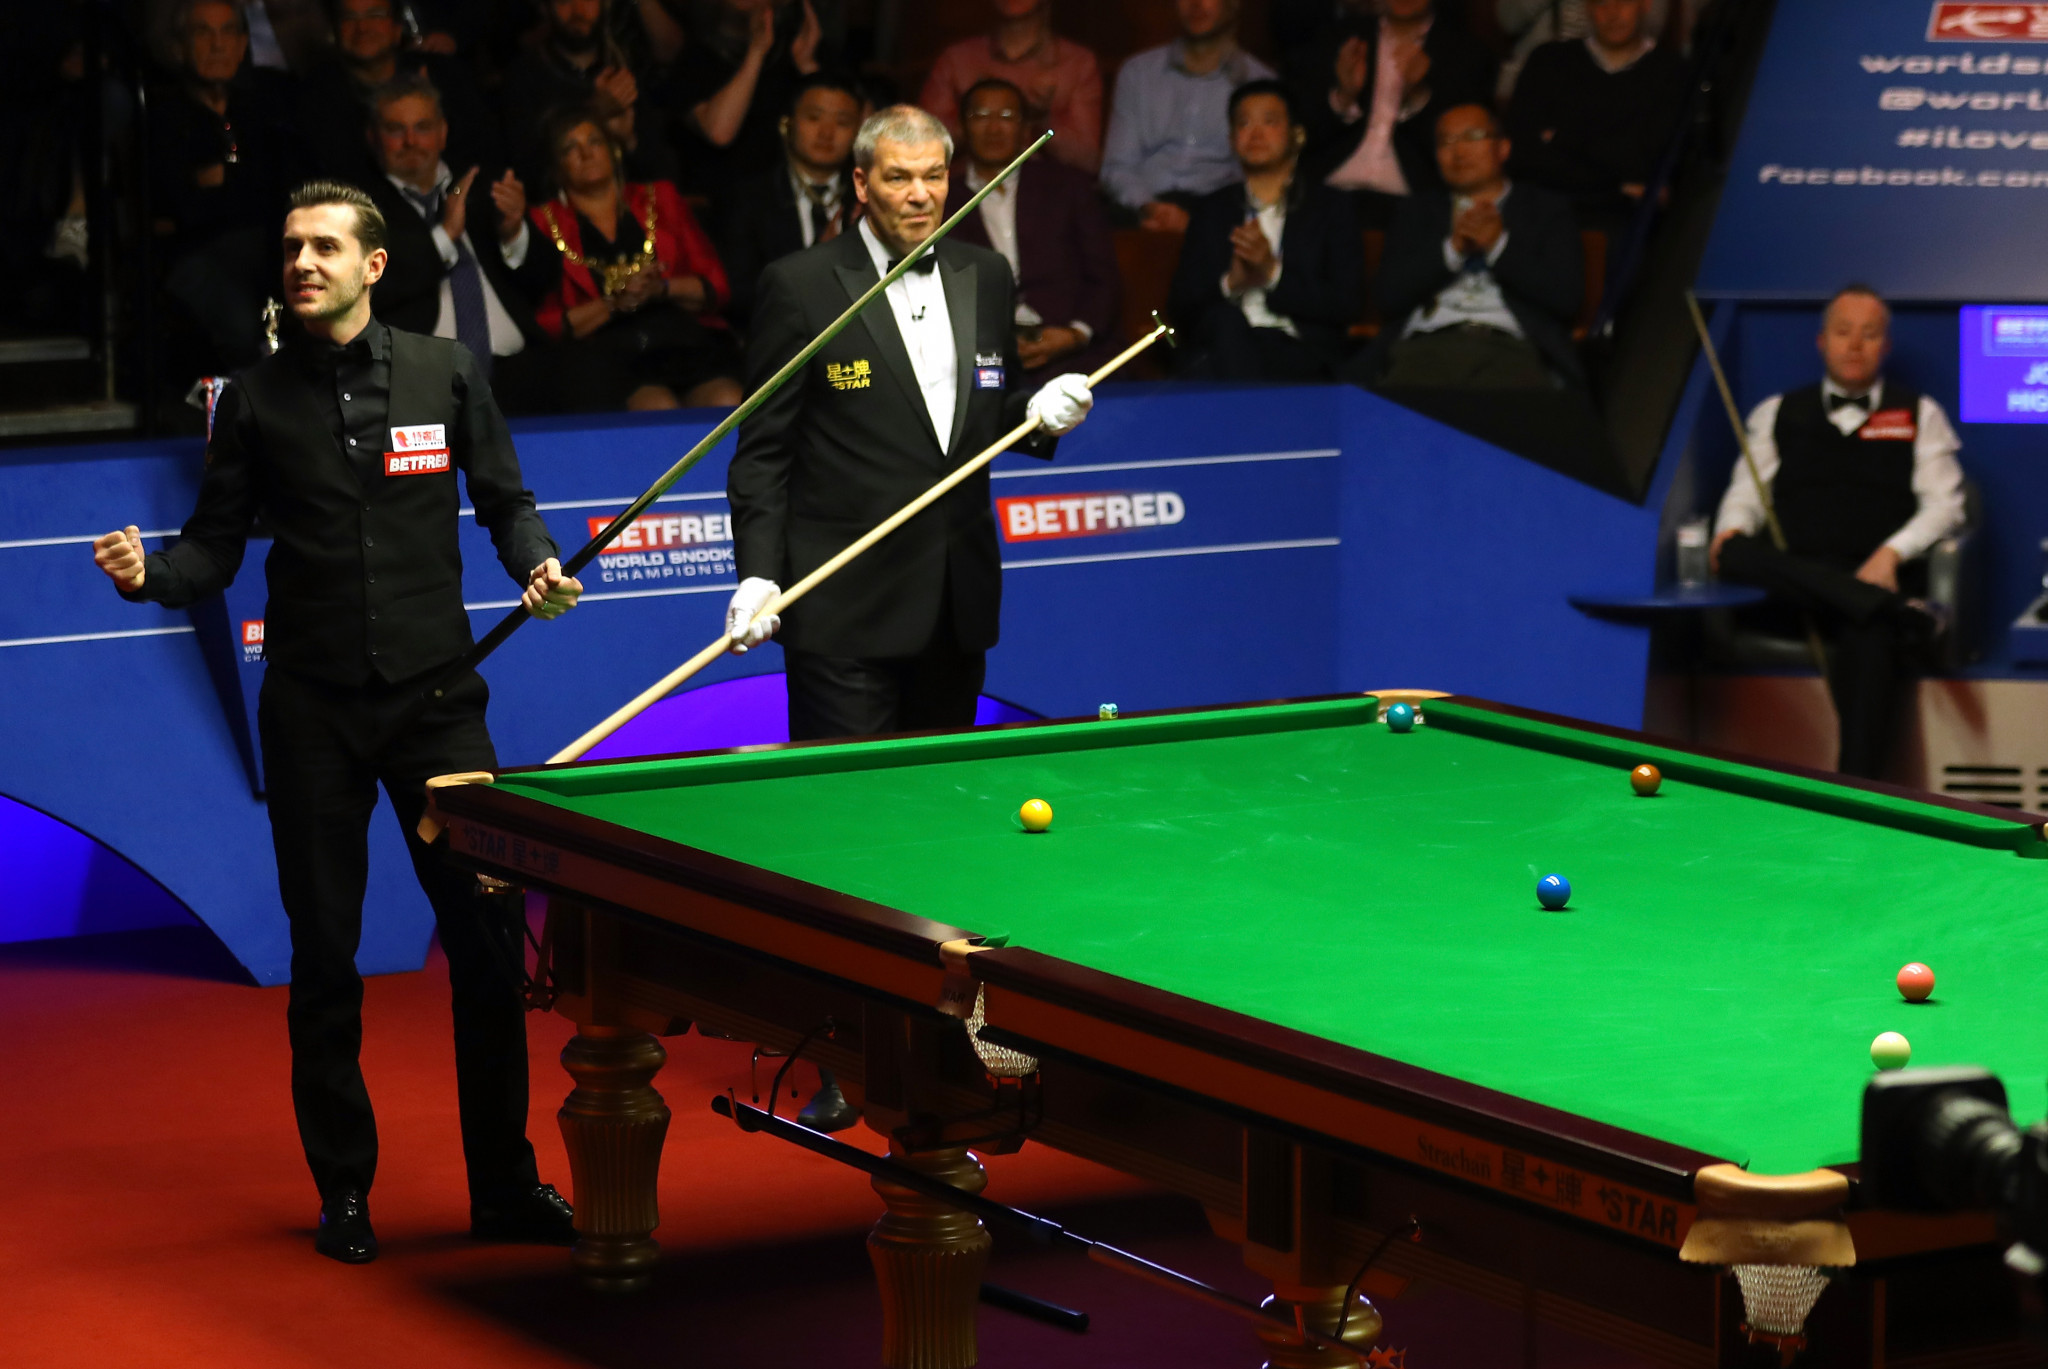 The four semi-finalists will also be invited to compete at the World Snooker Championship ©Getty Images